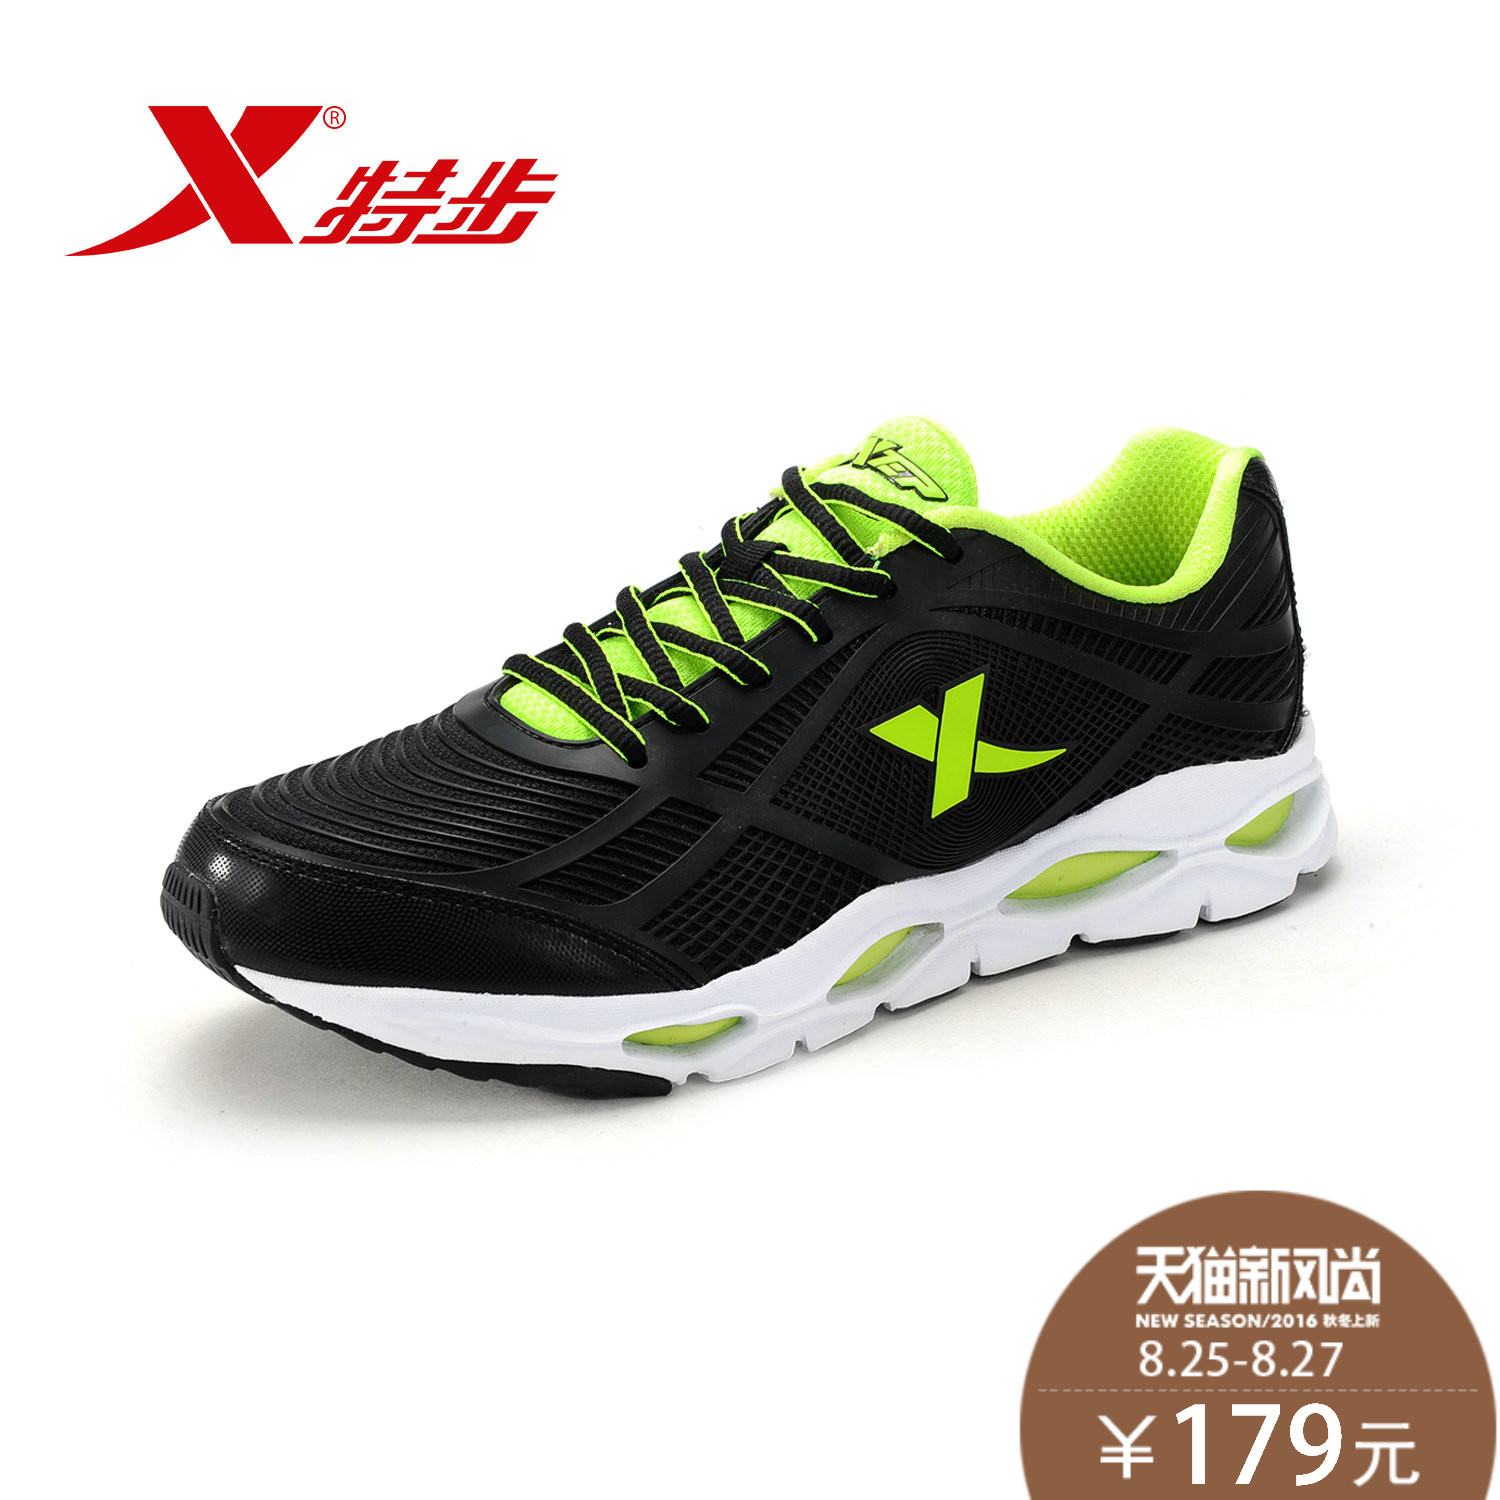 [Official] xtep xtep men's summer sports shoes men shoes cushioning breathable mesh running shoes men casual shoes mesh shoes